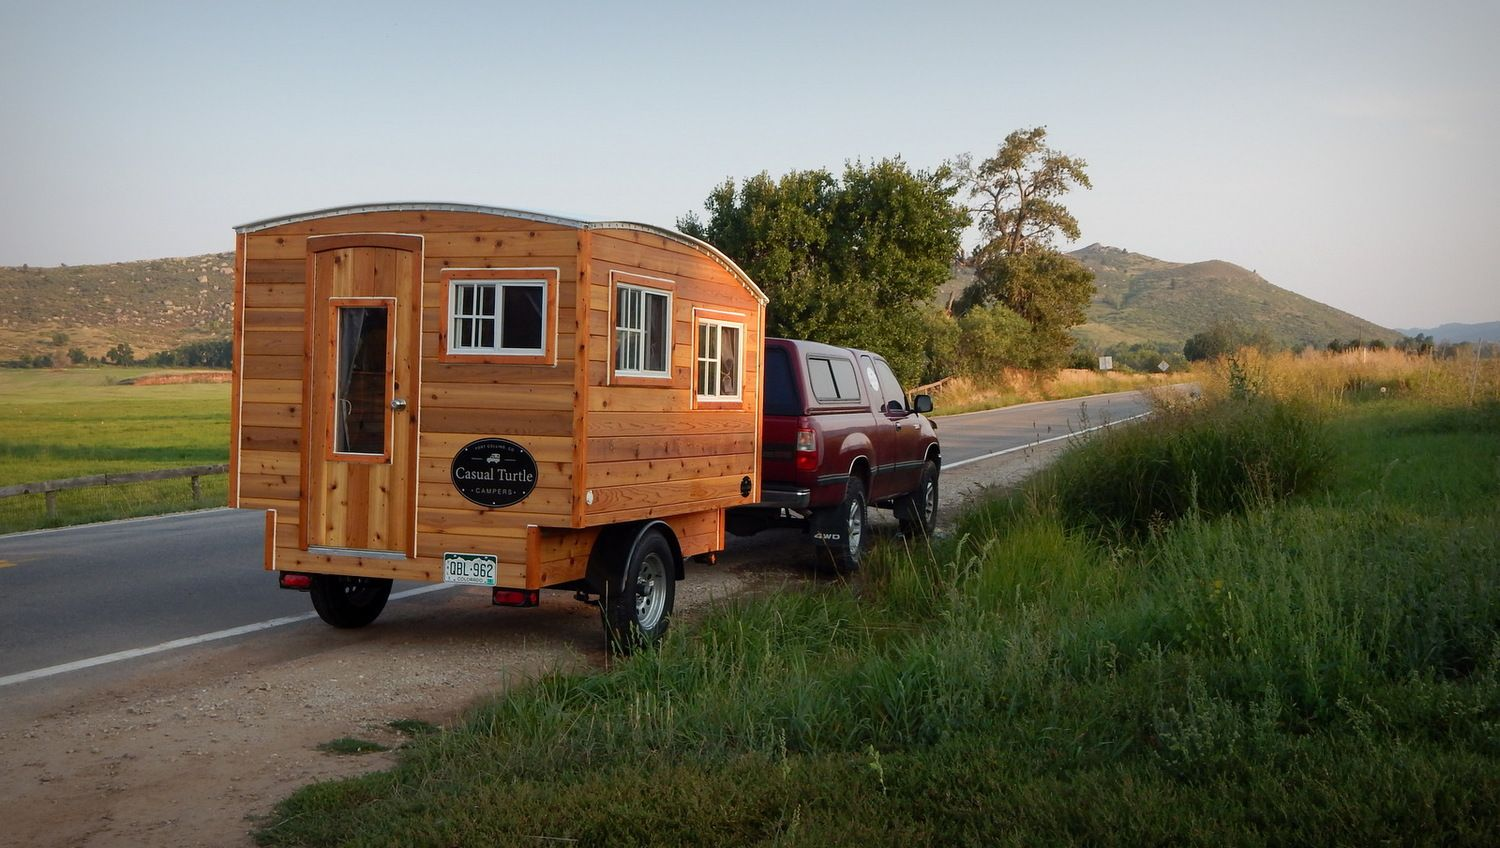 Terrapin Casual Turtle Campers In 2020 Small Campers Camper Trailers Small Camping Trailer